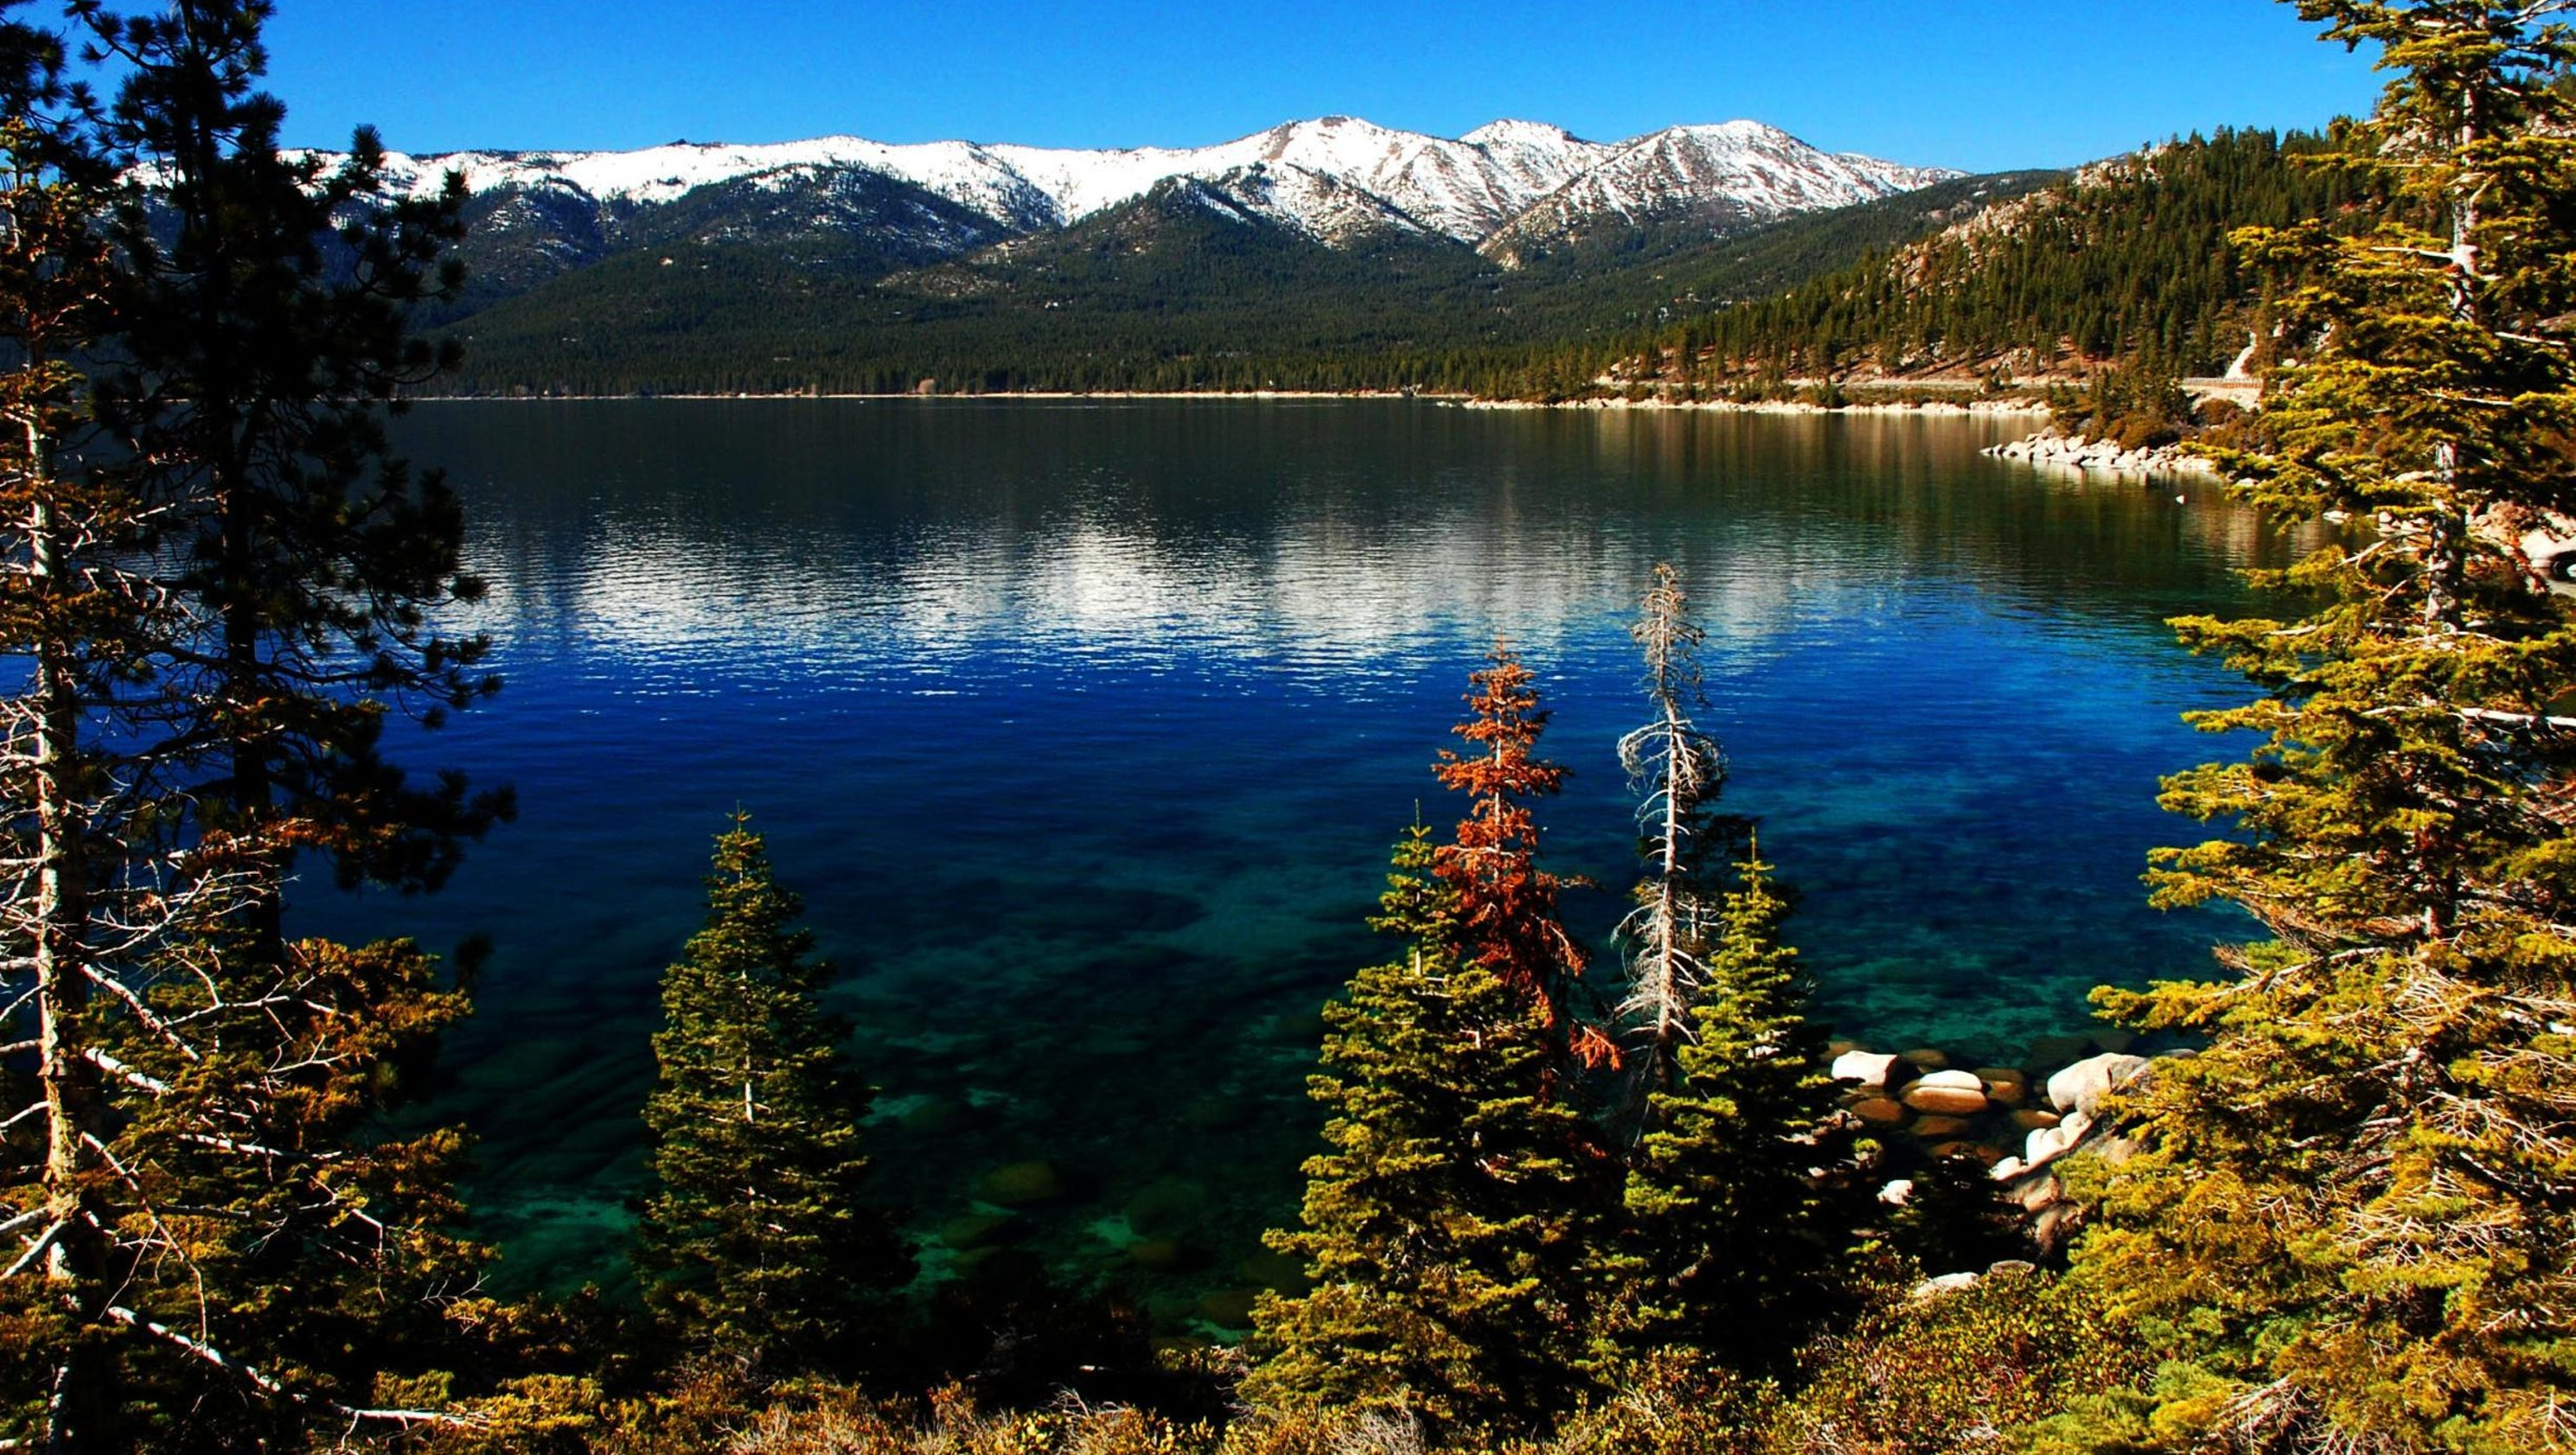 estate amp agate tunnington cabin carnelian lake condo cabins realty rentals real linked properties print home tahoe north bay dr info induced